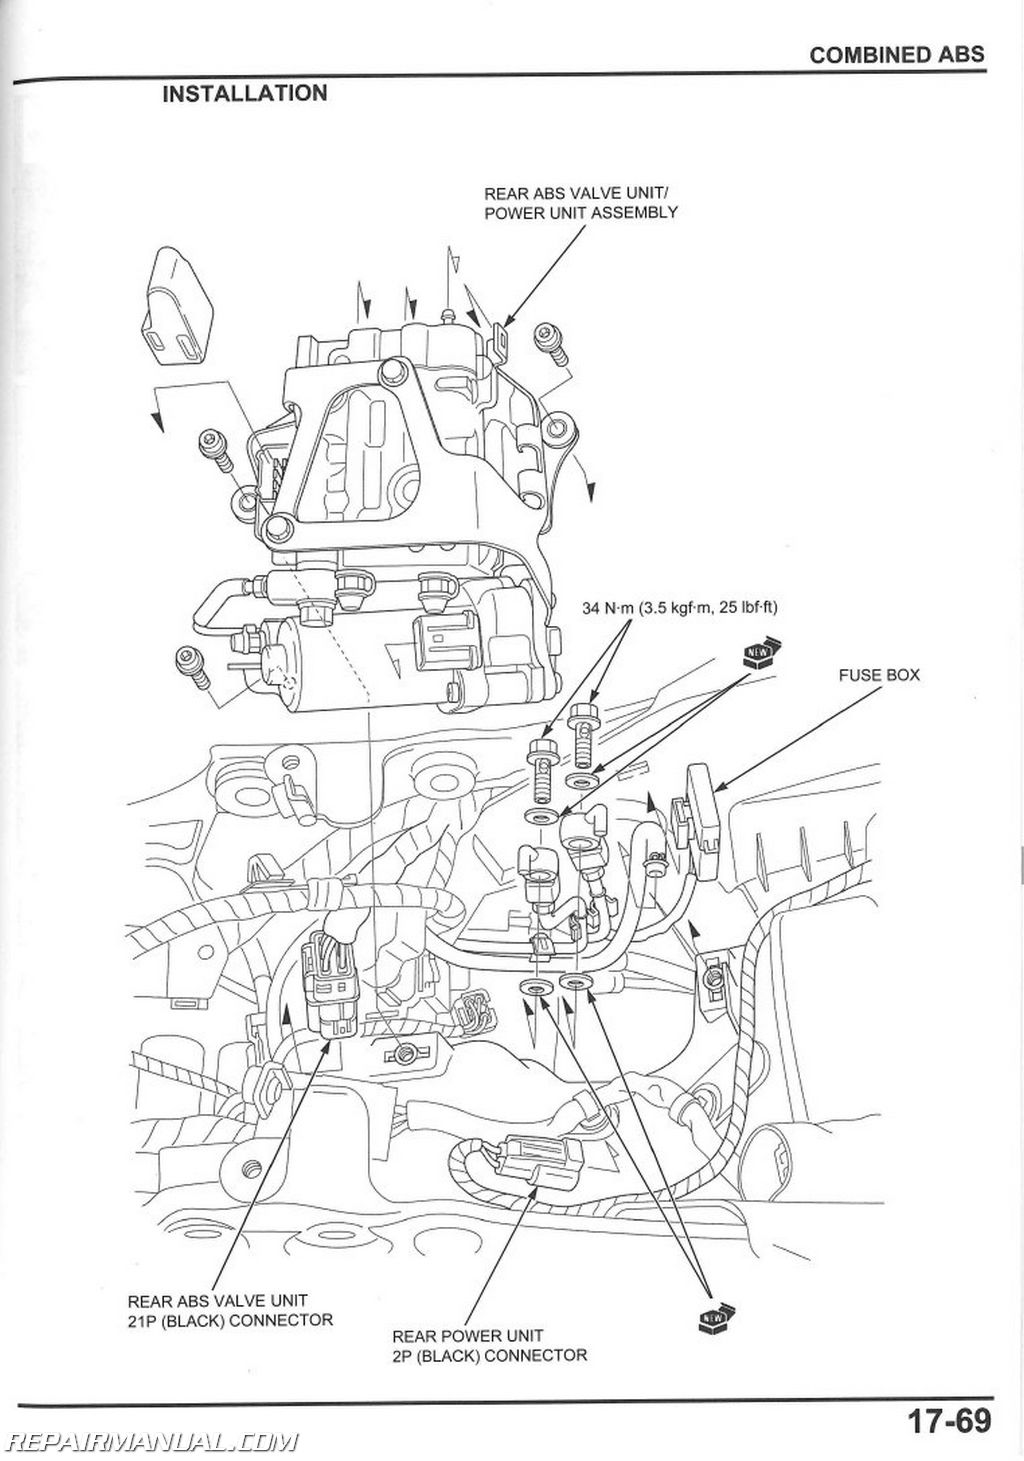 Wiring Diagram For Honda Cbr